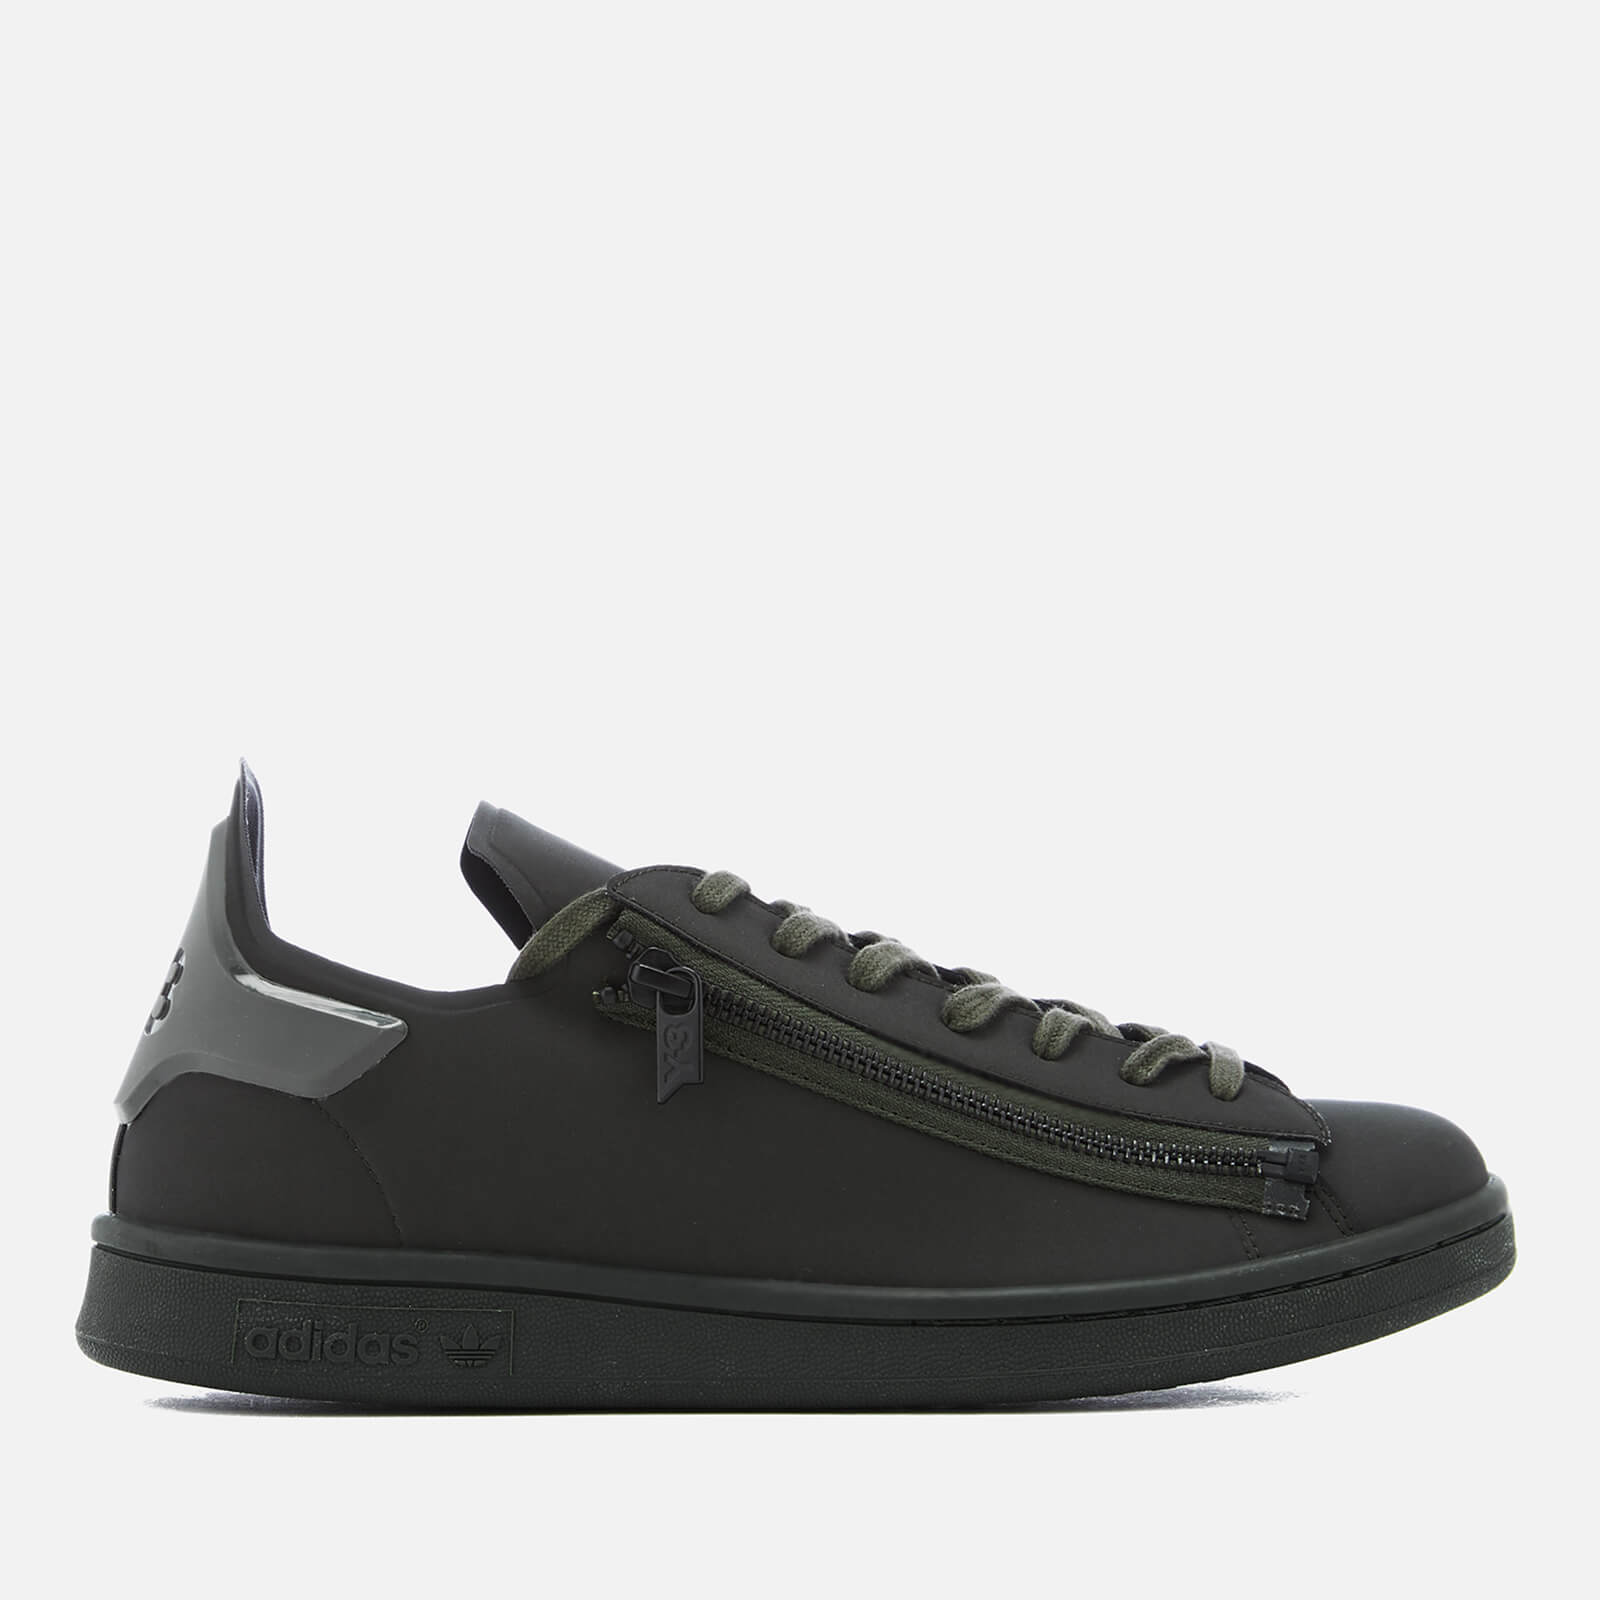 394b766e2 Y-3 Stan Zip Sneakers - Y-3 Black Olive - Free UK Delivery over £50